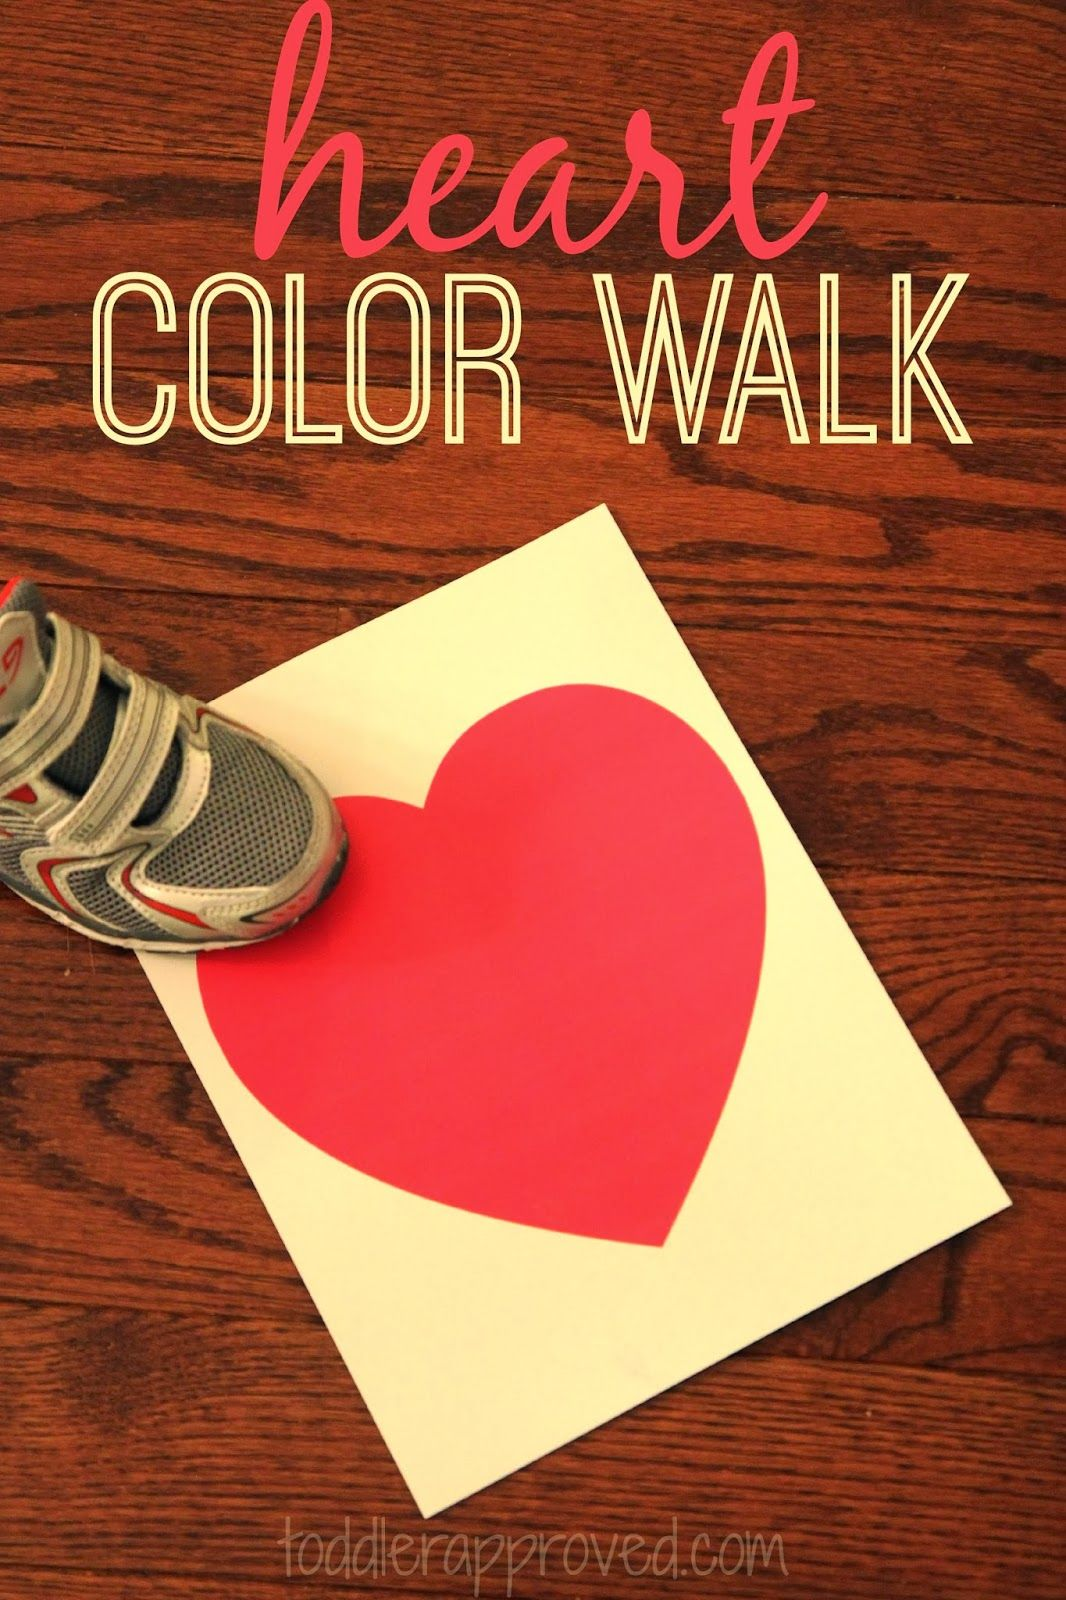 Heart Color Walk A Game For Kids Toddler Approved